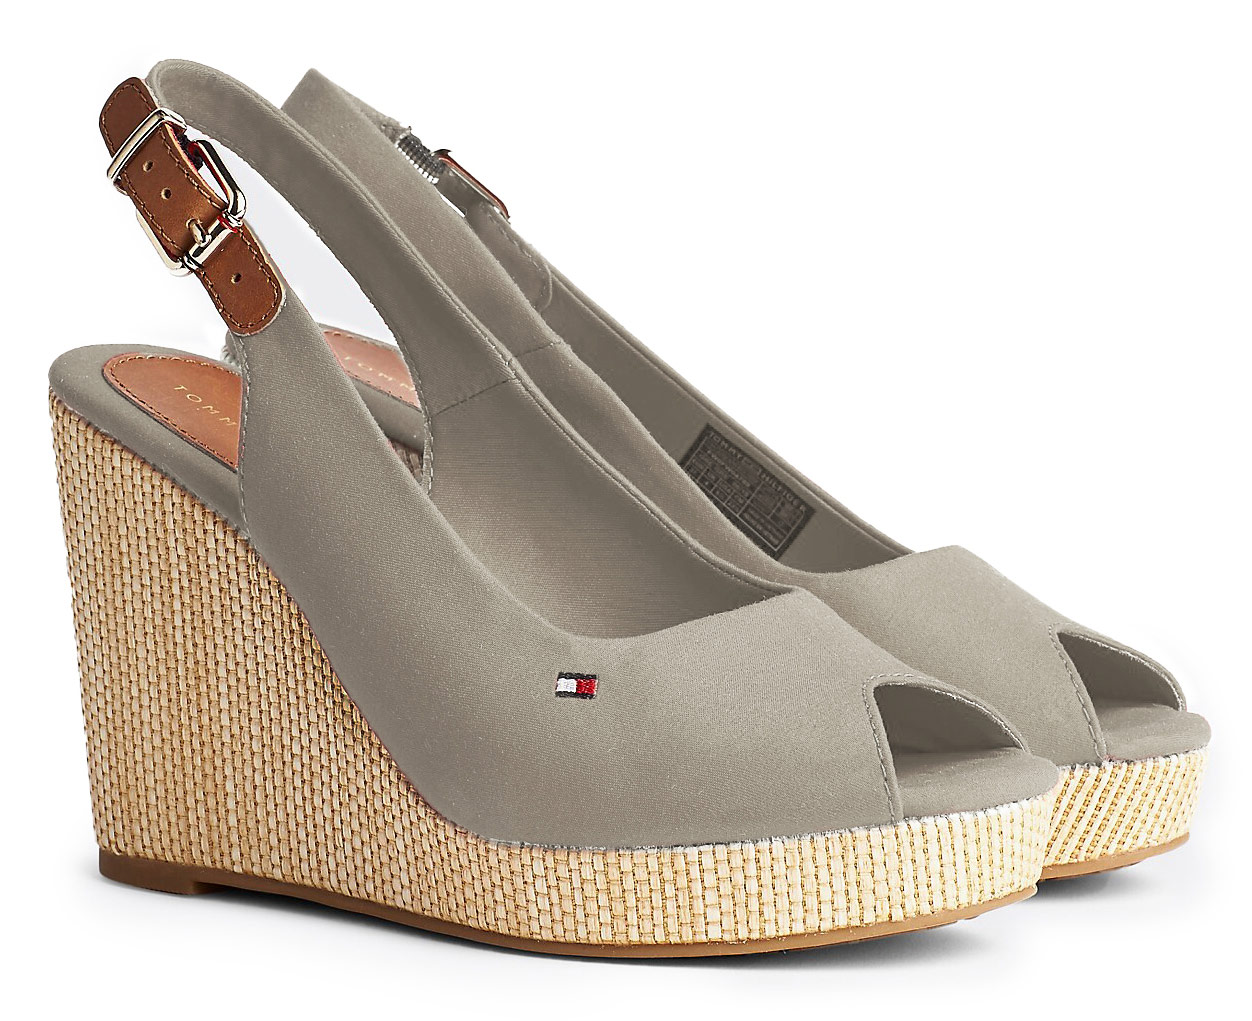 Tommy Hilfiger beige shoes on a wedge